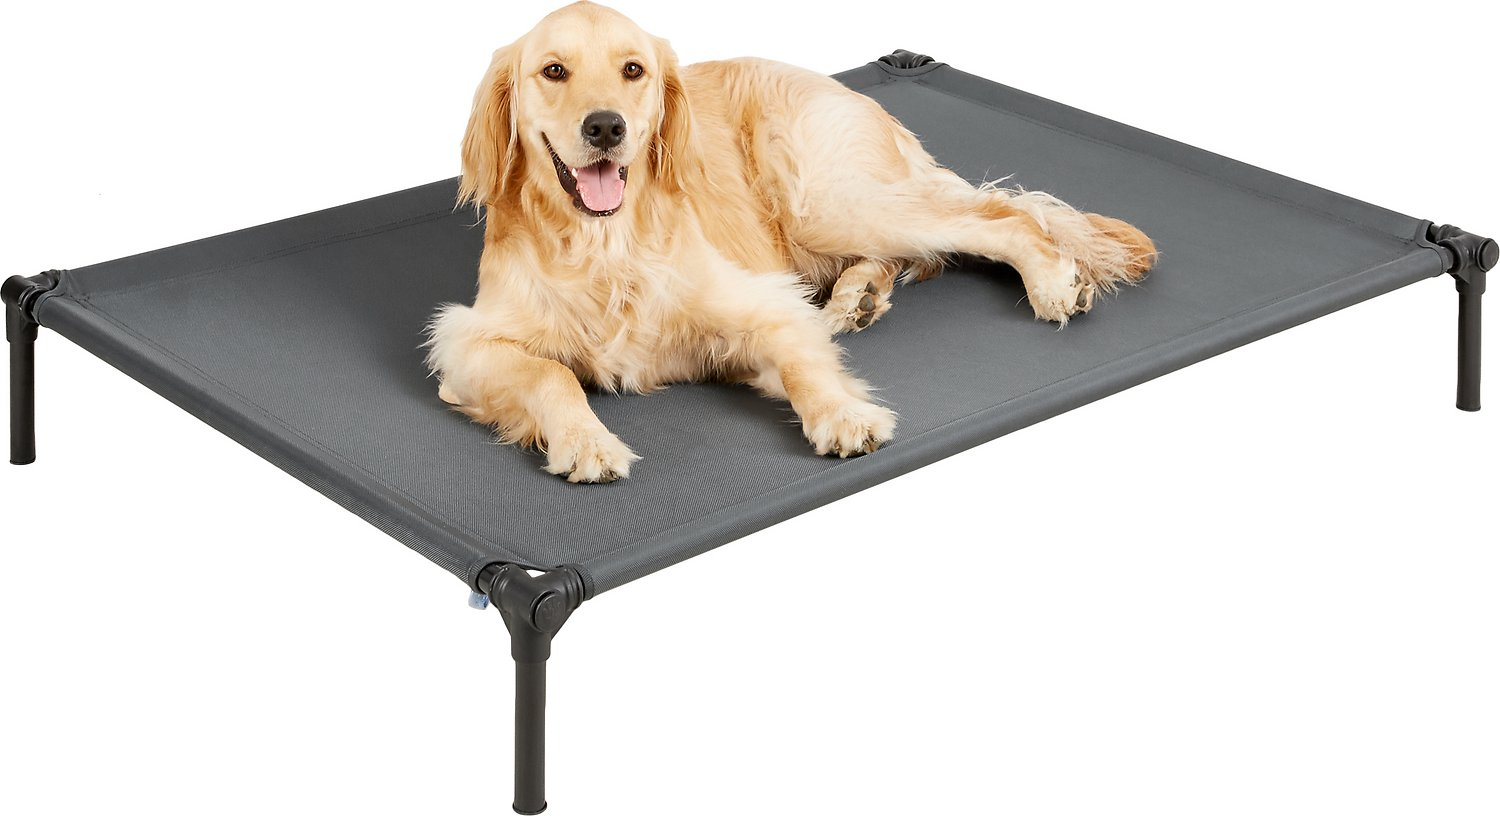 Starmark Dog Zone Pro Training Dog Bed